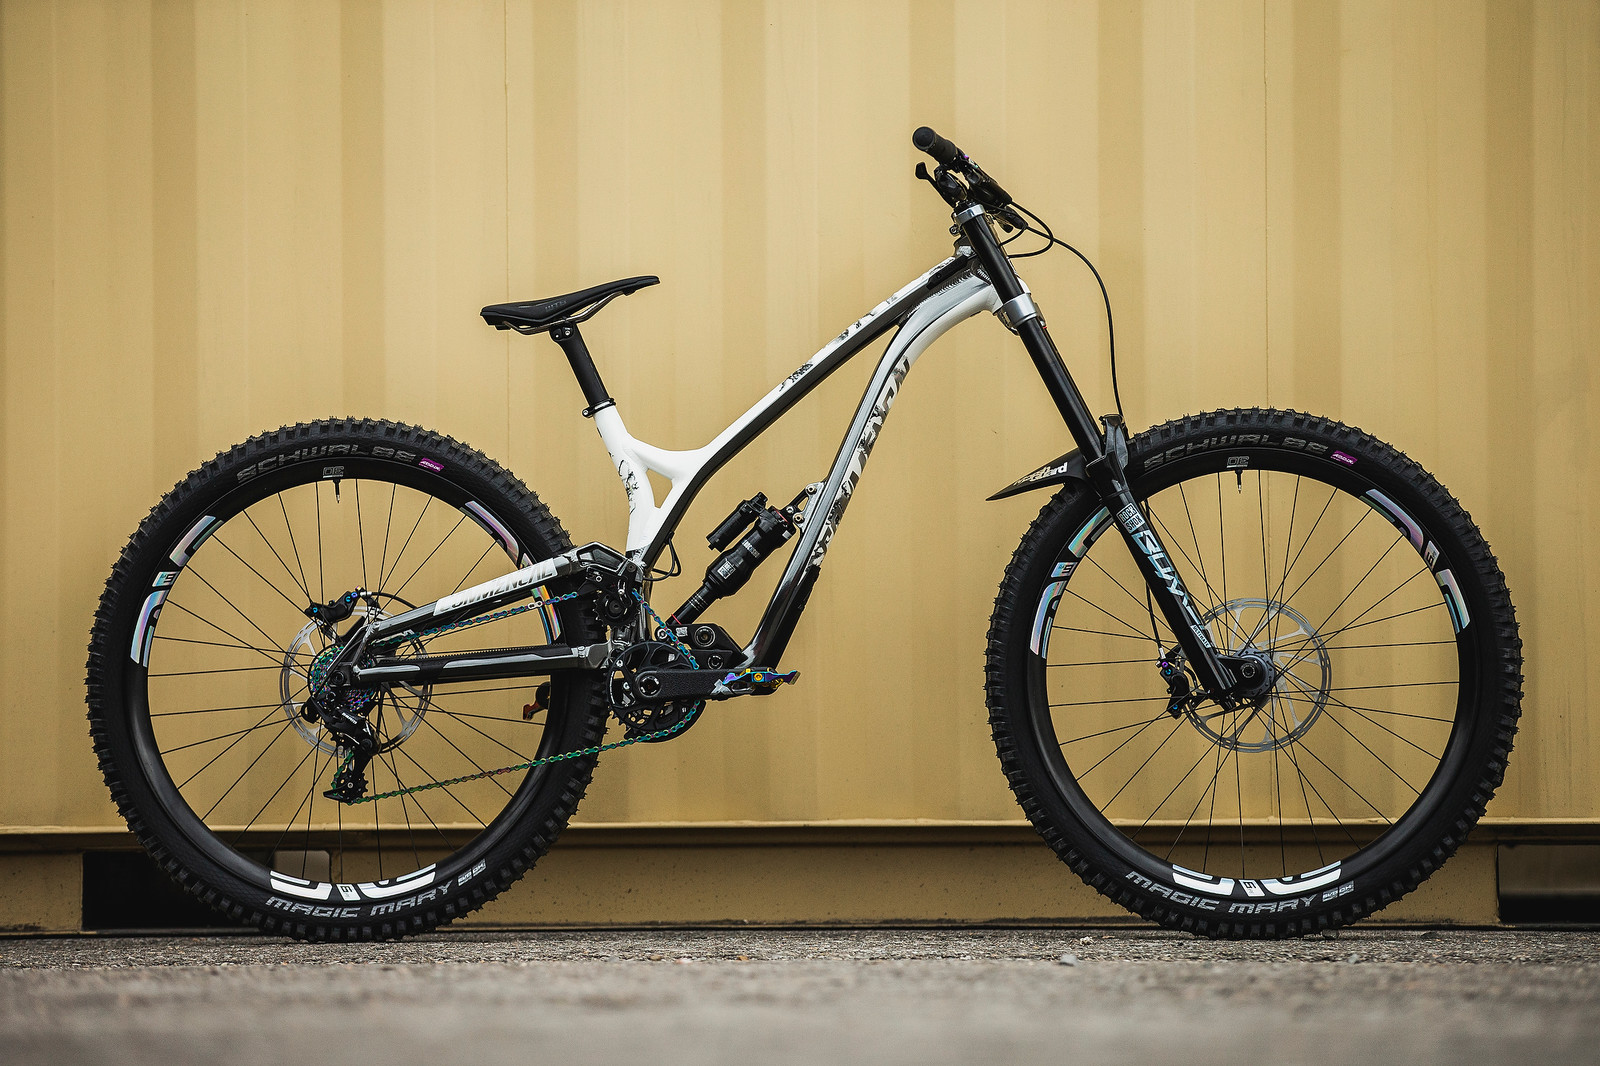 Amaury Pierron's Commencal Supreme DH 29 at 2019 Worlds MSA - Amaury Pierron's Commencal Supreme DH 29 at 2019 Worlds MSA - Mountain Biking Pictures - Vital MTB